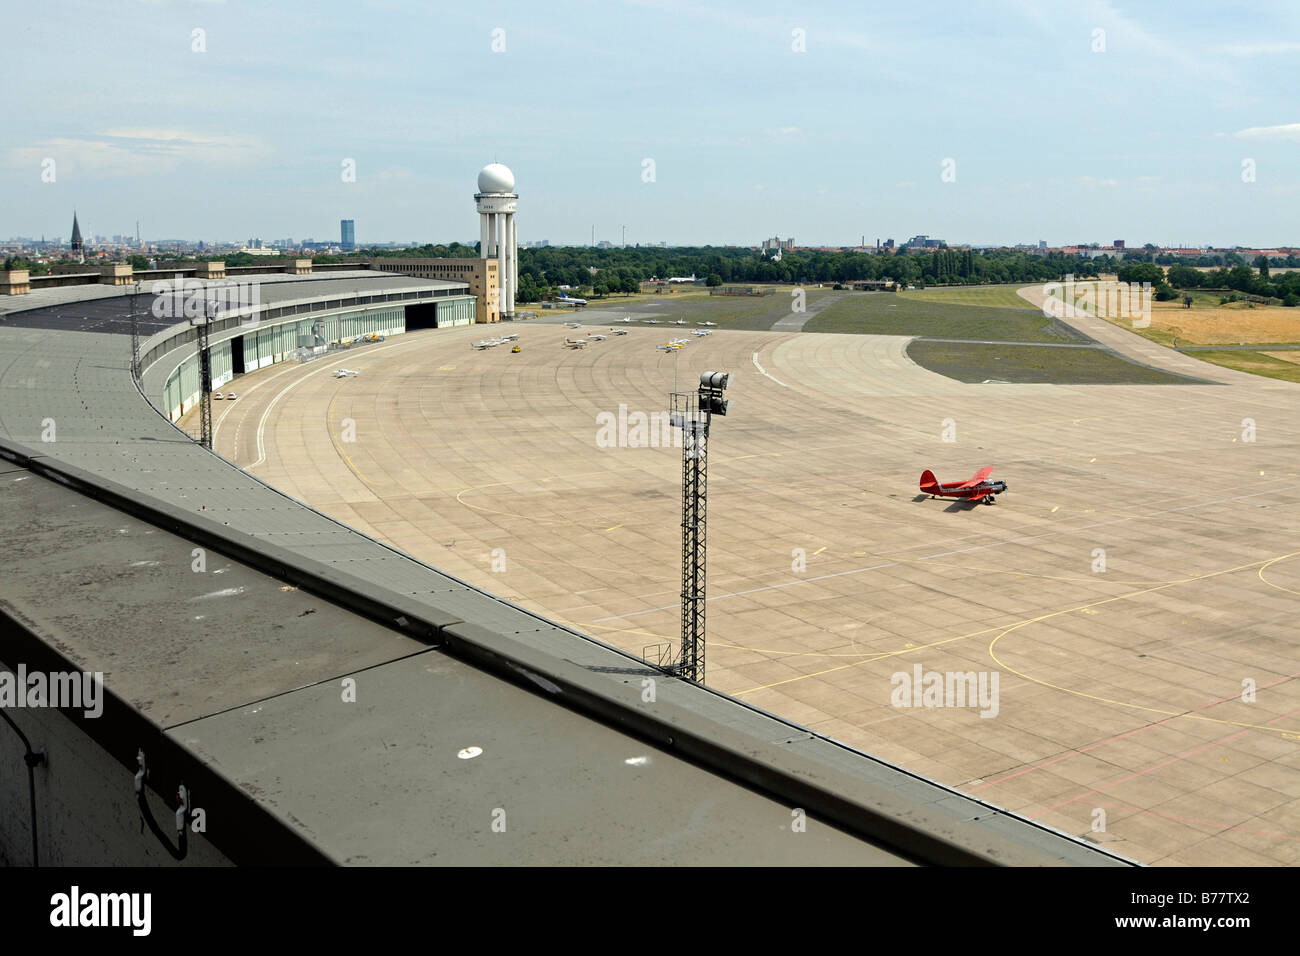 Part the airport building and the apron at Tempelhof Airport, Berlin, Germany, Europe - Stock Image